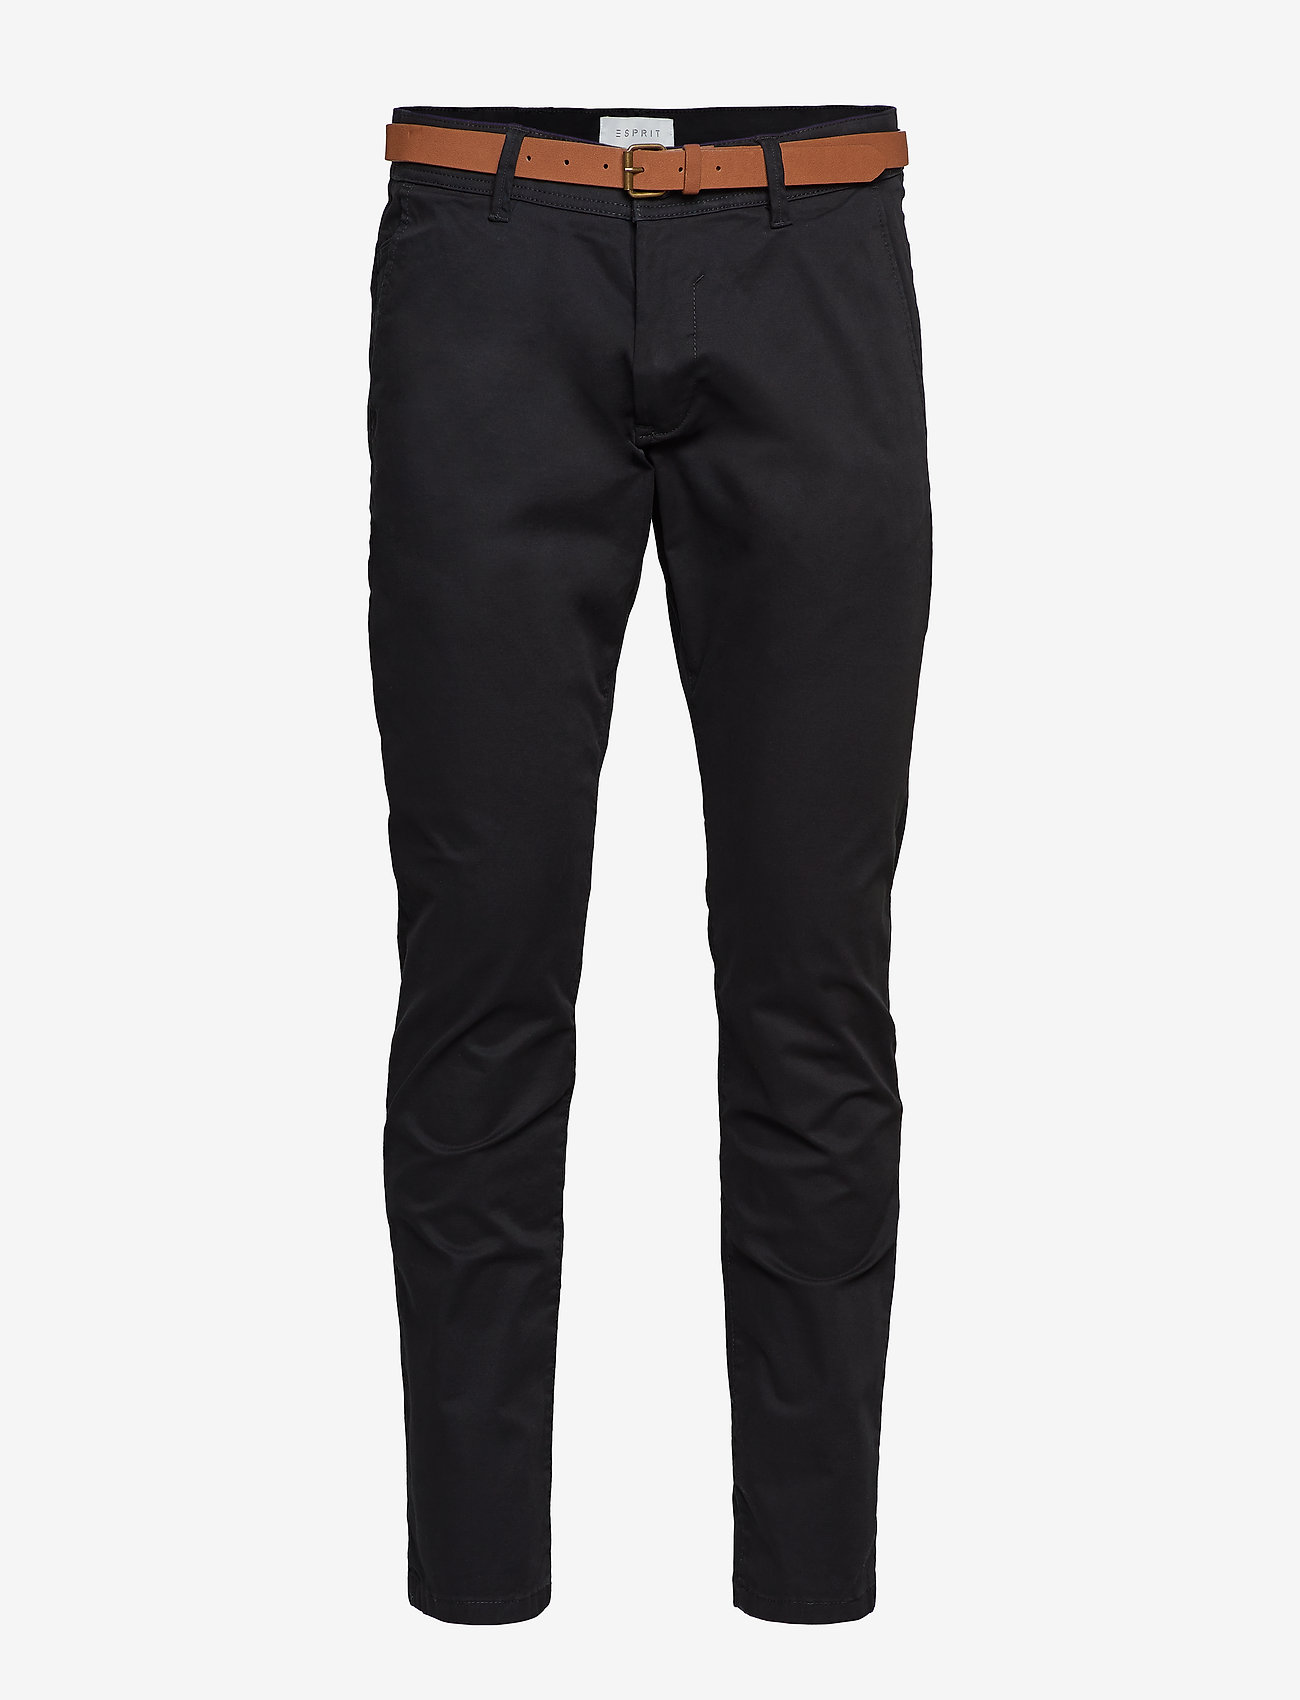 Esprit Casual - Pants woven - chinos - black - 0